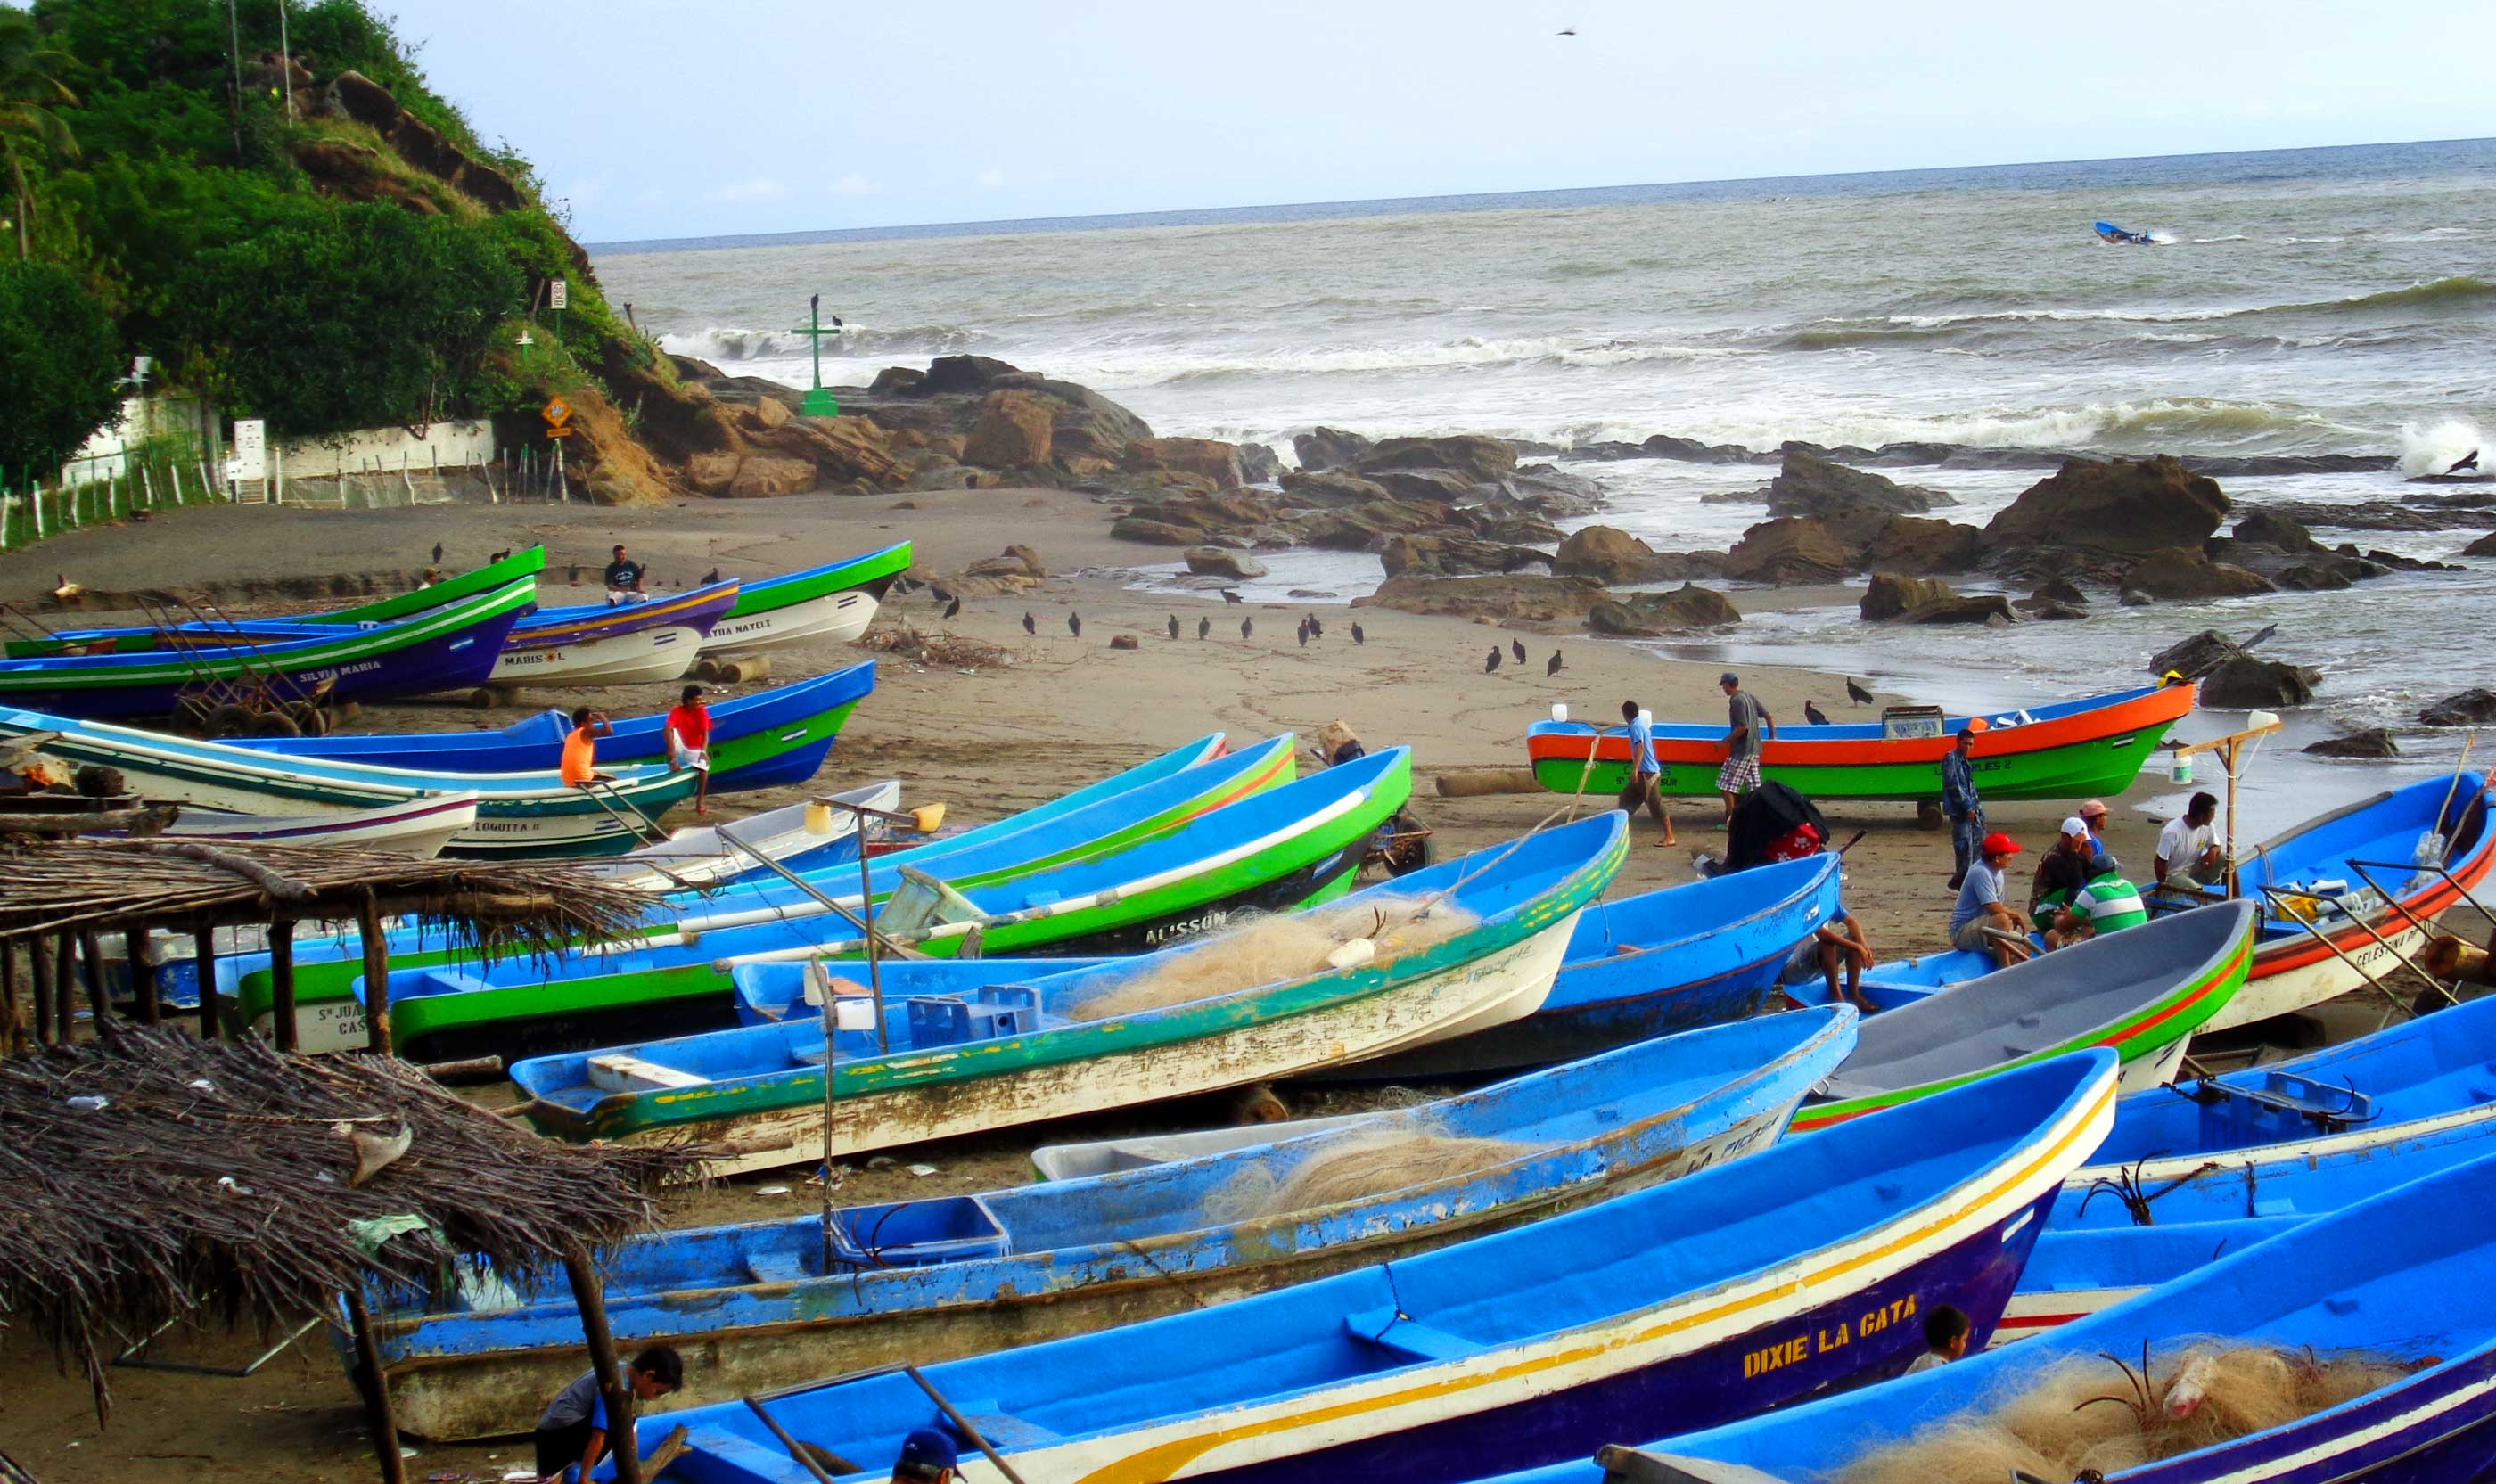 Boats On A Beach in Nicaragua